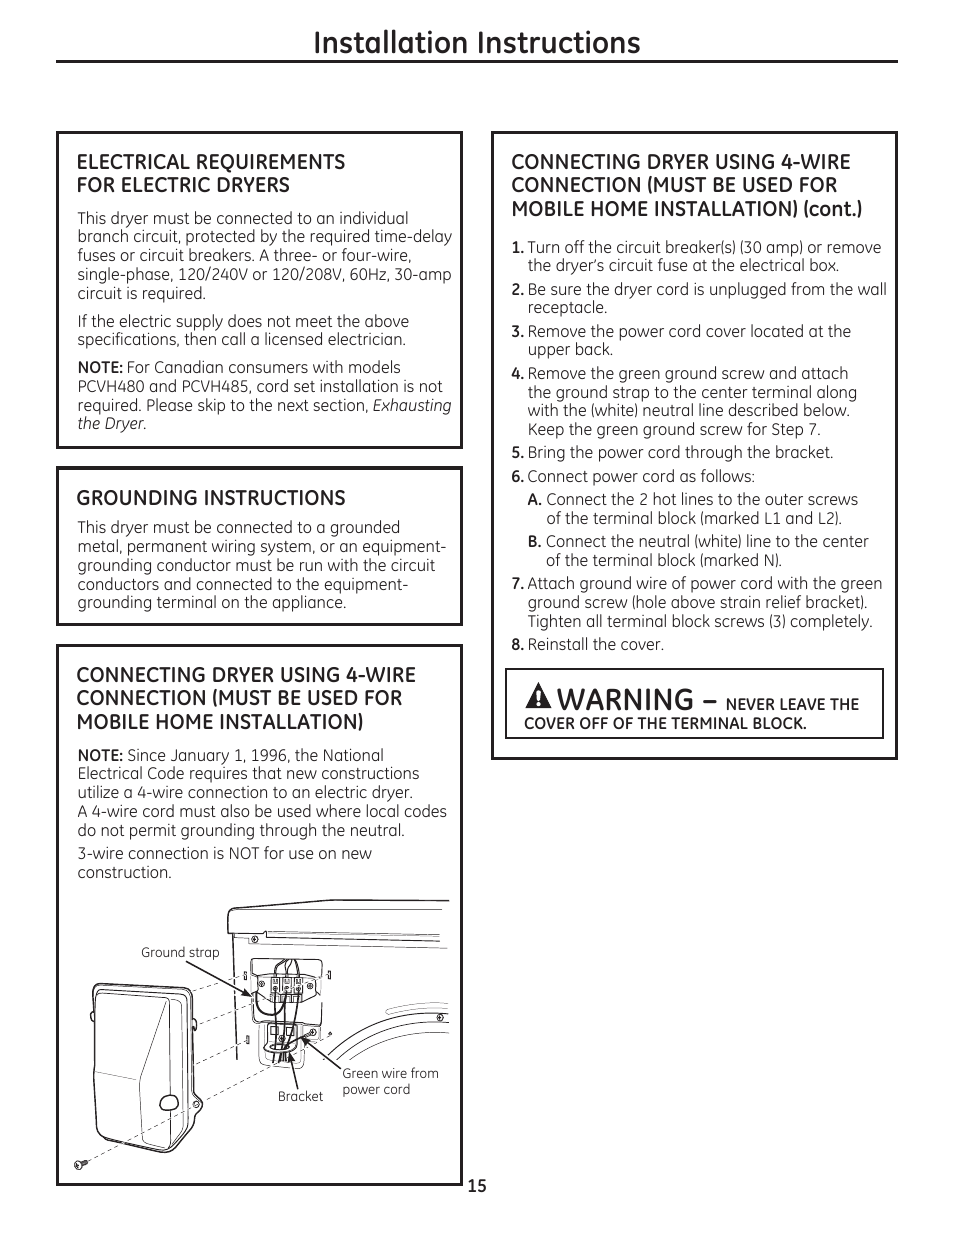 Installation Instructions Warning Electrical Requirements For Wiring Dryer Circuit Electric Dryers Ge Dcvh480ekww User Manual Page 15 108